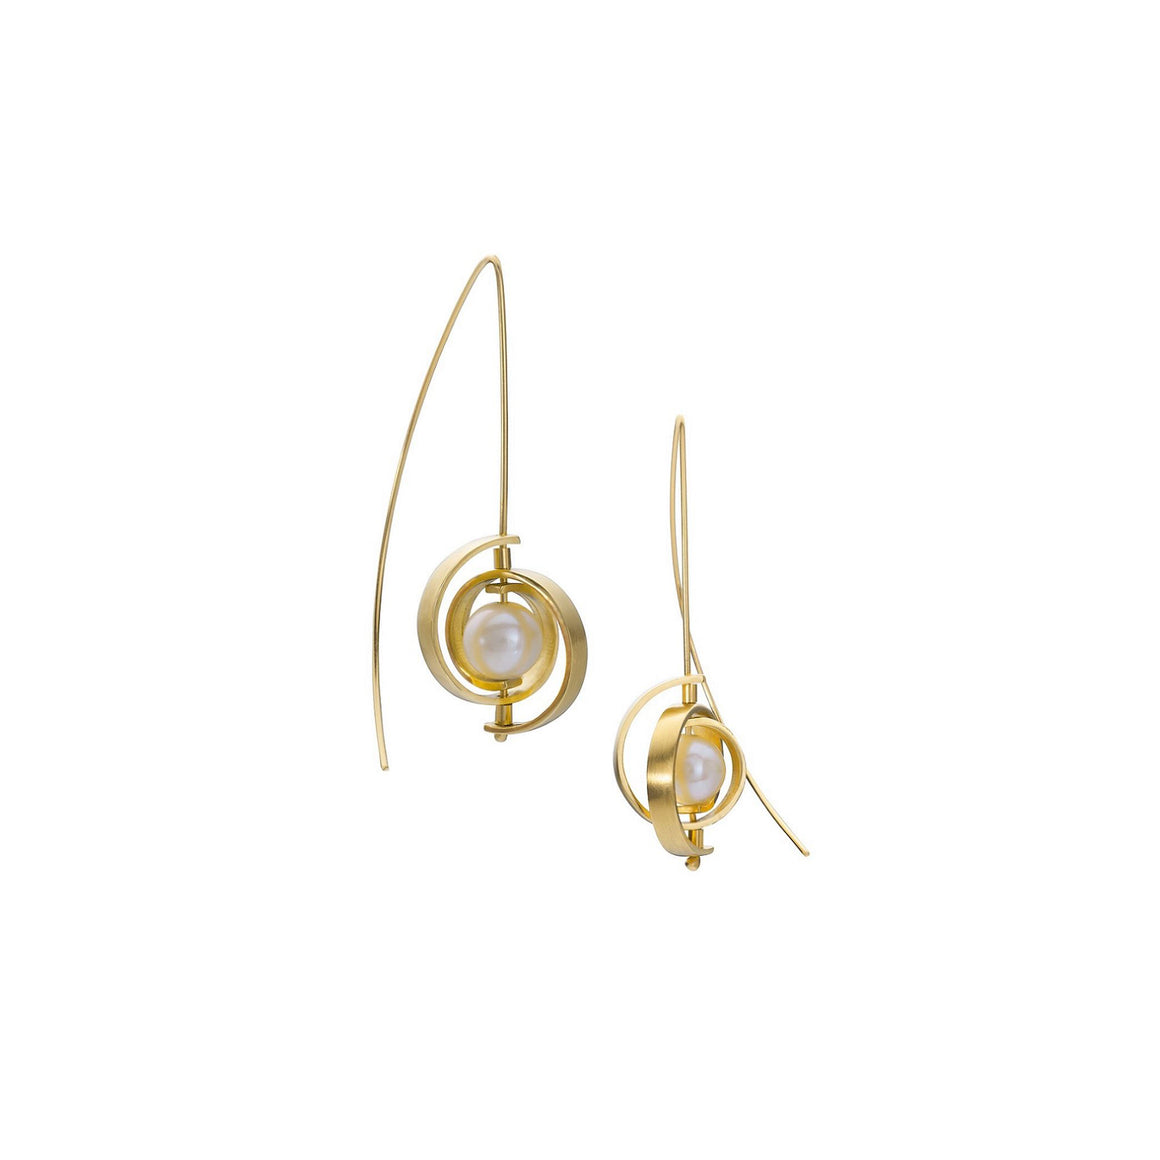 Medium Gold Spiral Earrings by Martha Seely - Talisman Collection Fine Jewelers